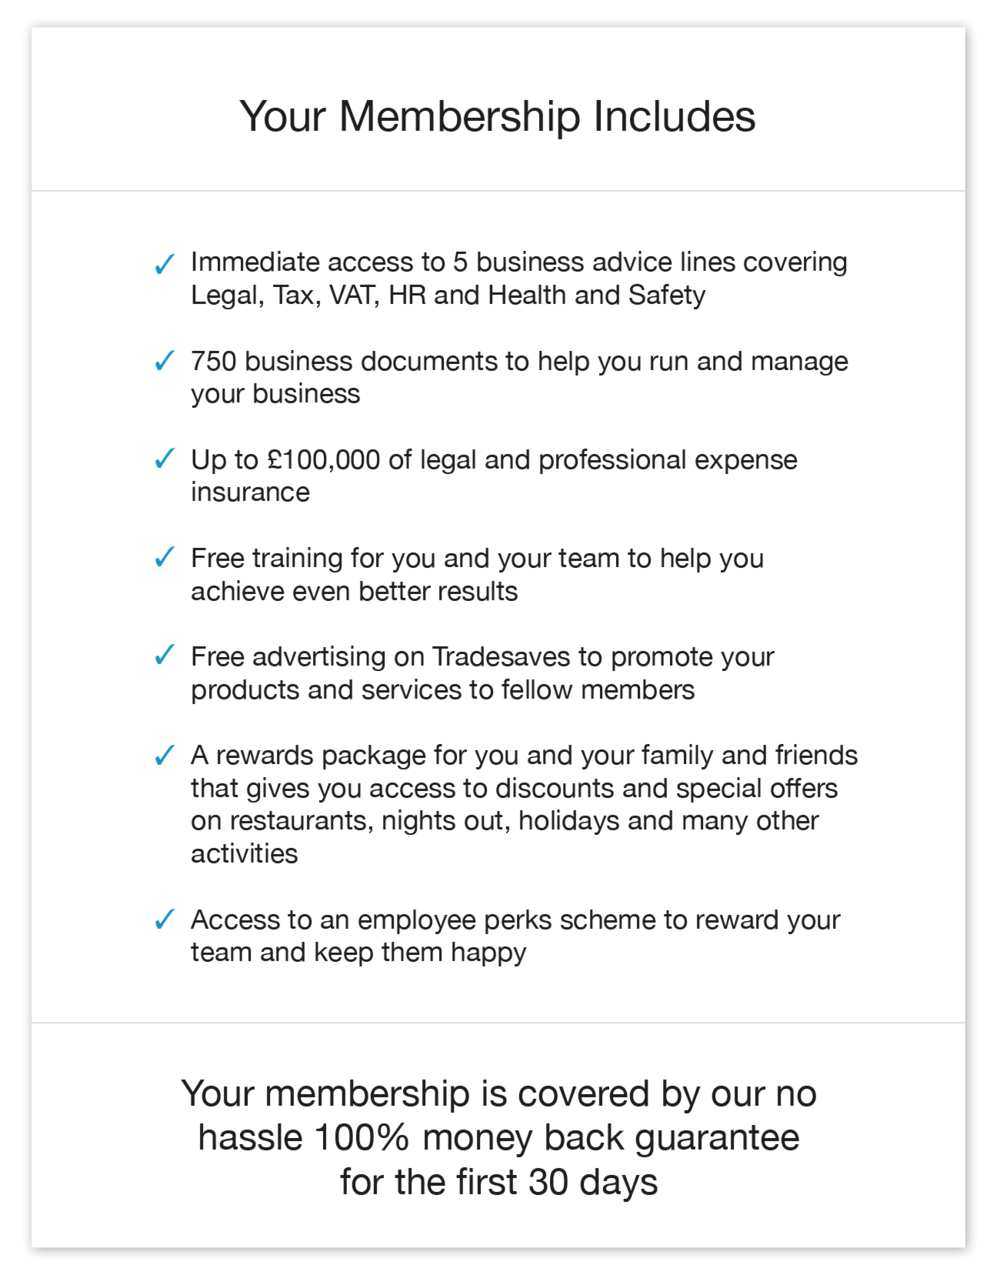 yout-membership-includes.png